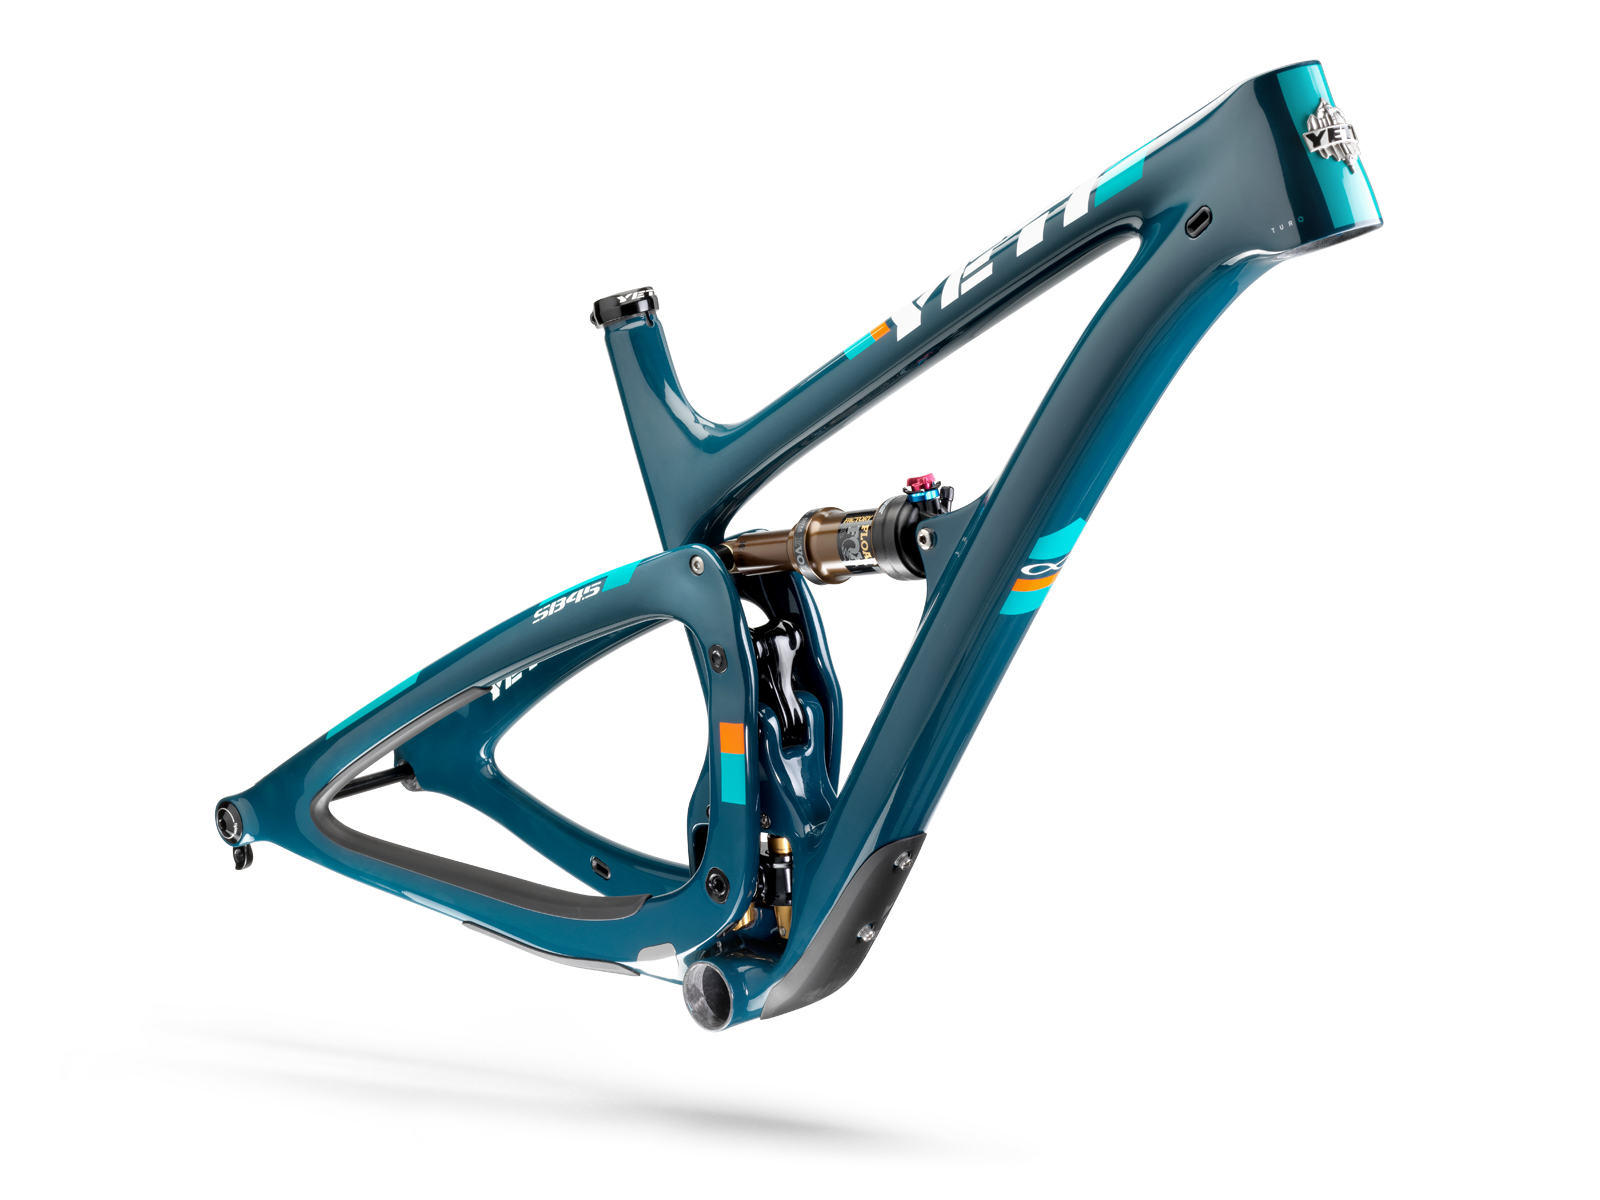 16002018_YetiCycles_Frame_SB45_TS_Storm_02